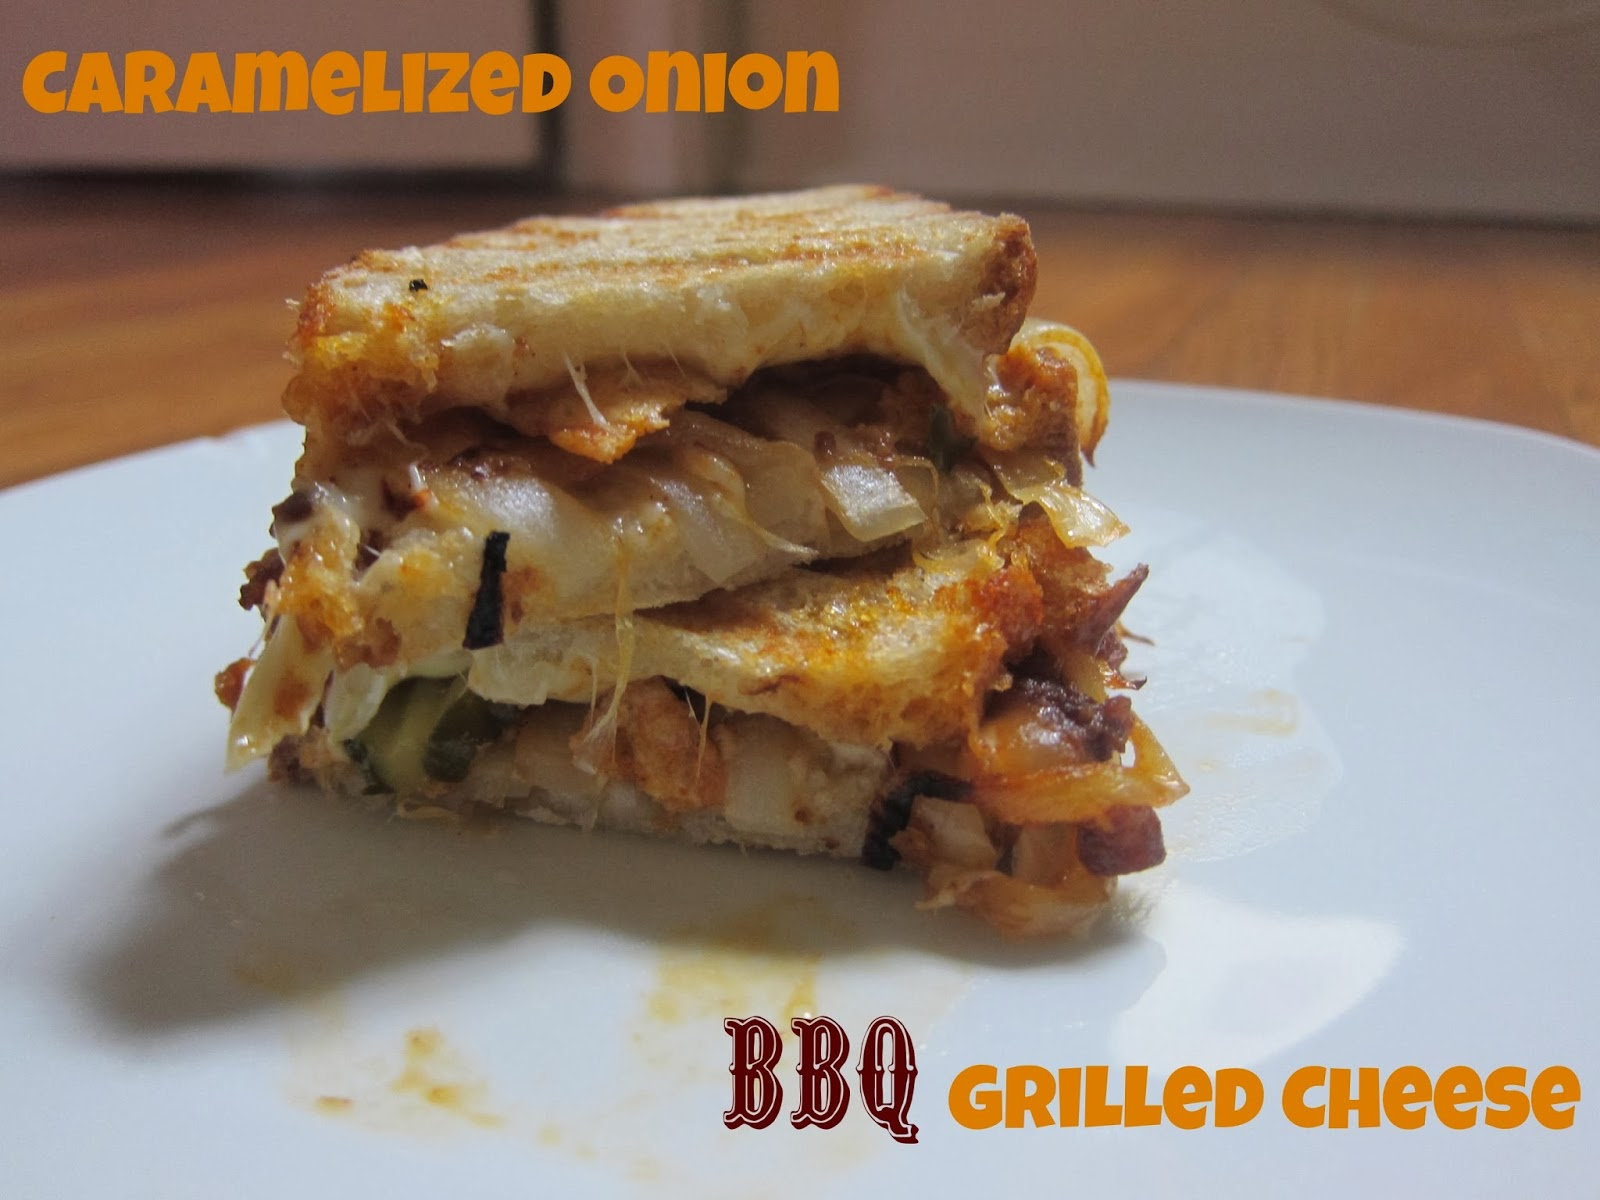 Caramelized Onion BBQ Grilled Cheese | The Economical Eater